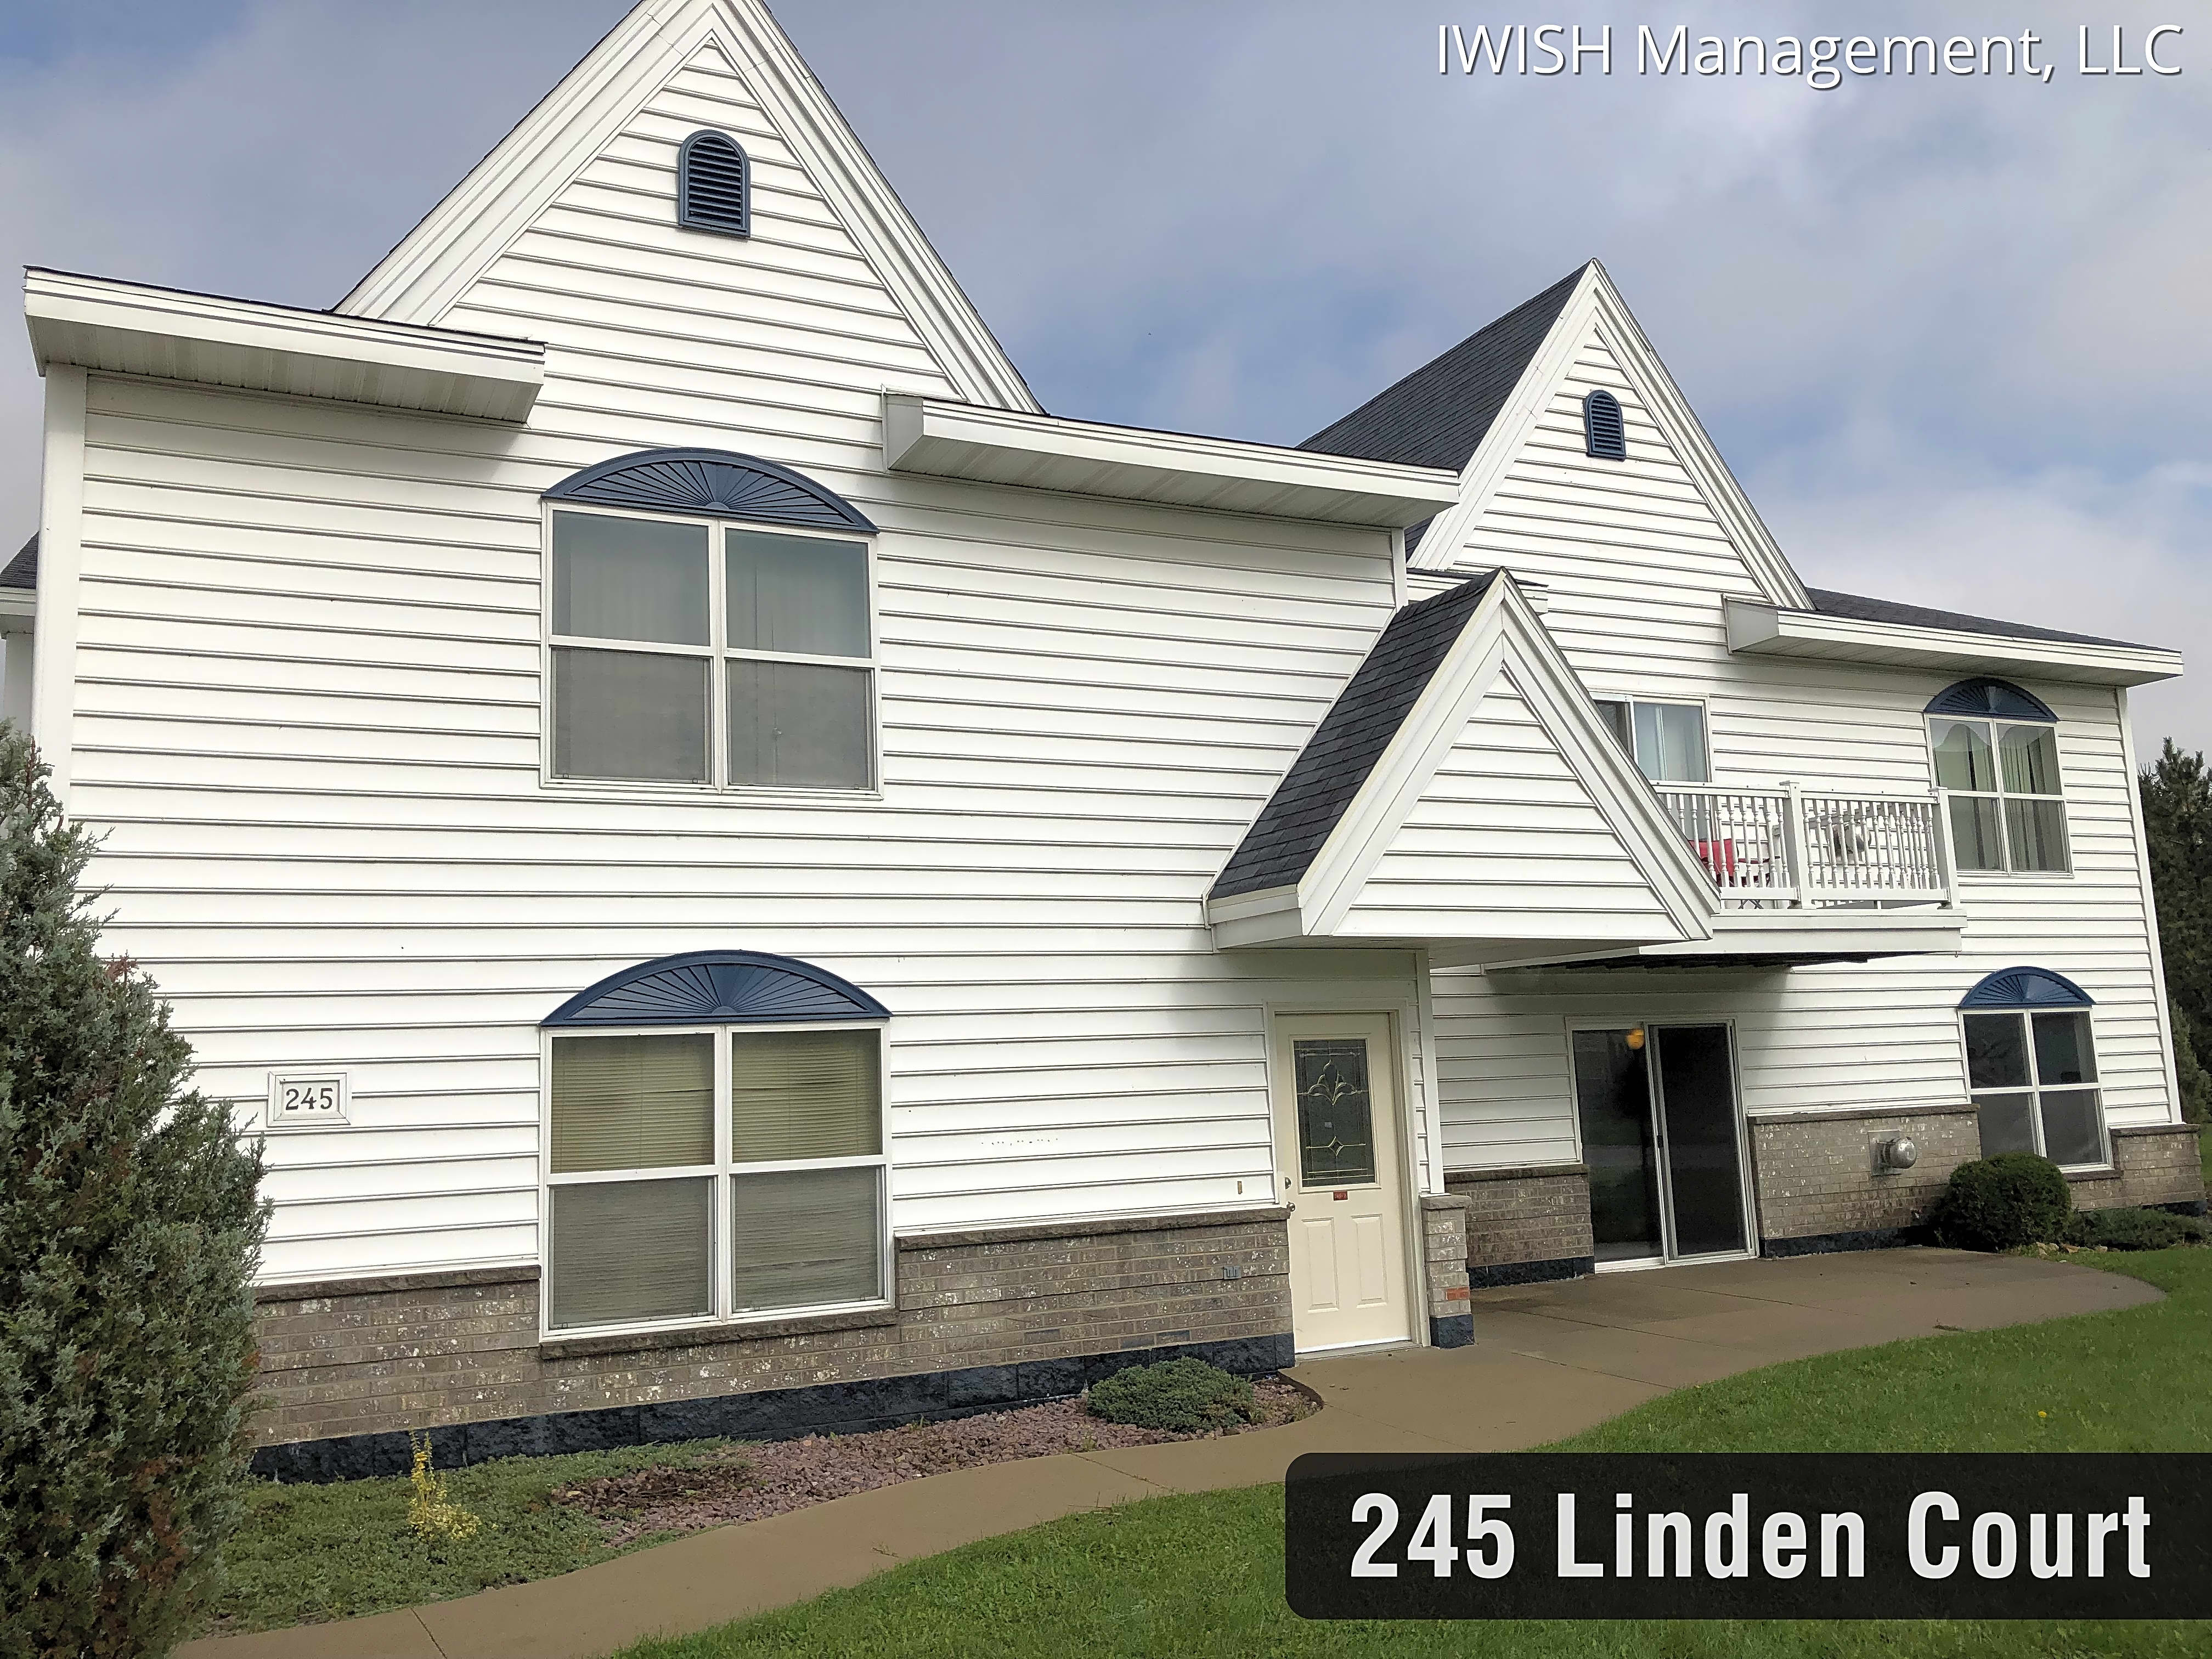 Apartments Near Marian Lomira Apartments for Marian University Students in Fond du Lac, WI